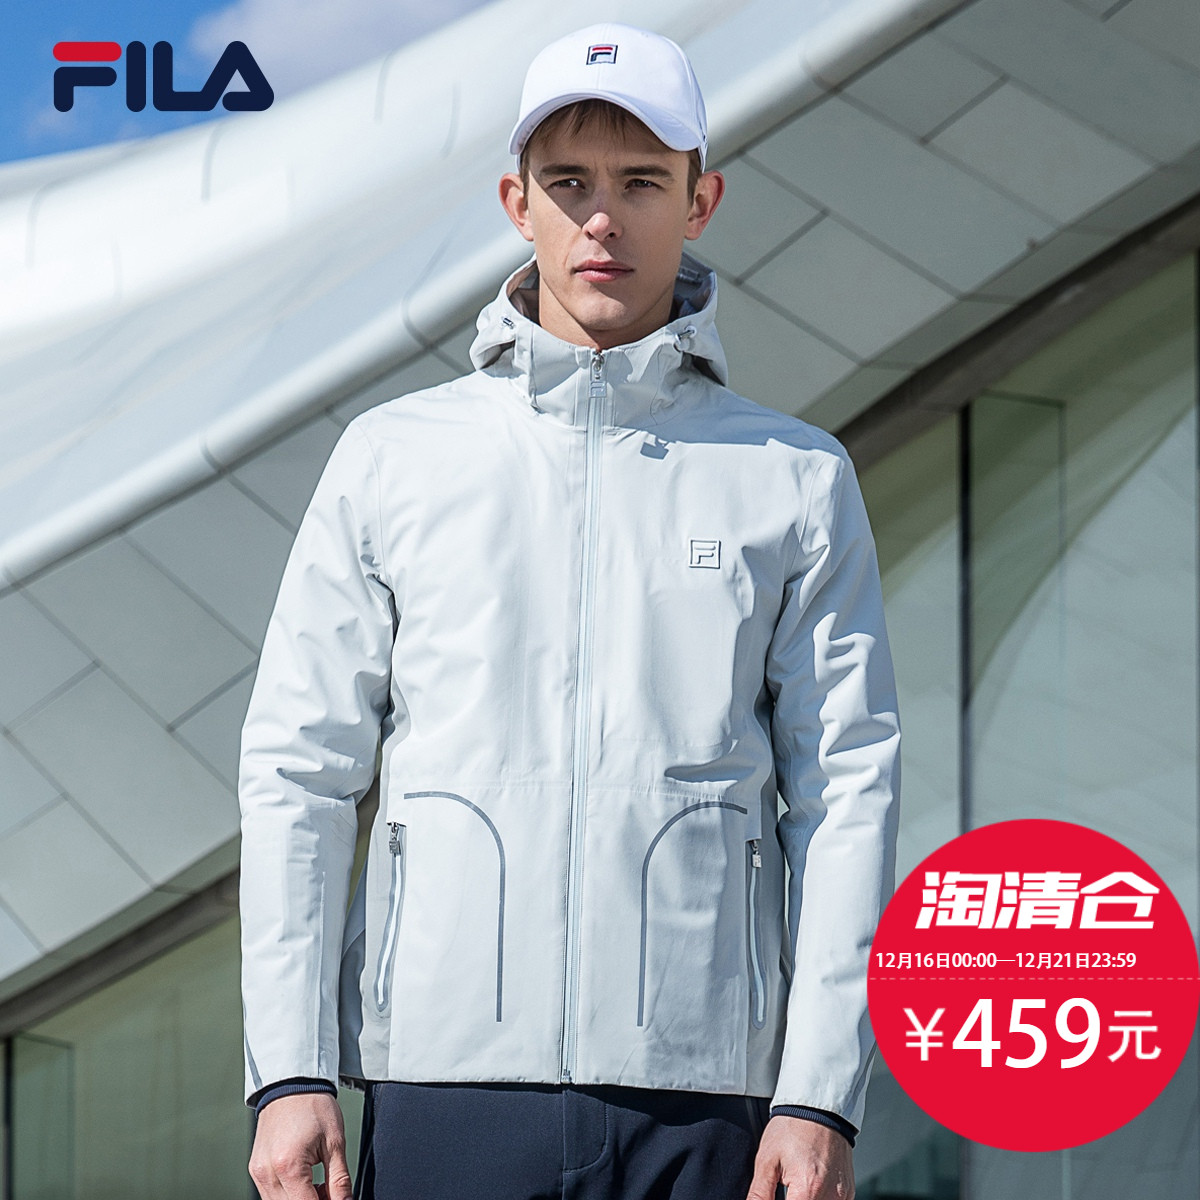 584f9729c34a FILA Fei Le official authentic coat male 2018 spring new woven jacket  hooded sports jacket male